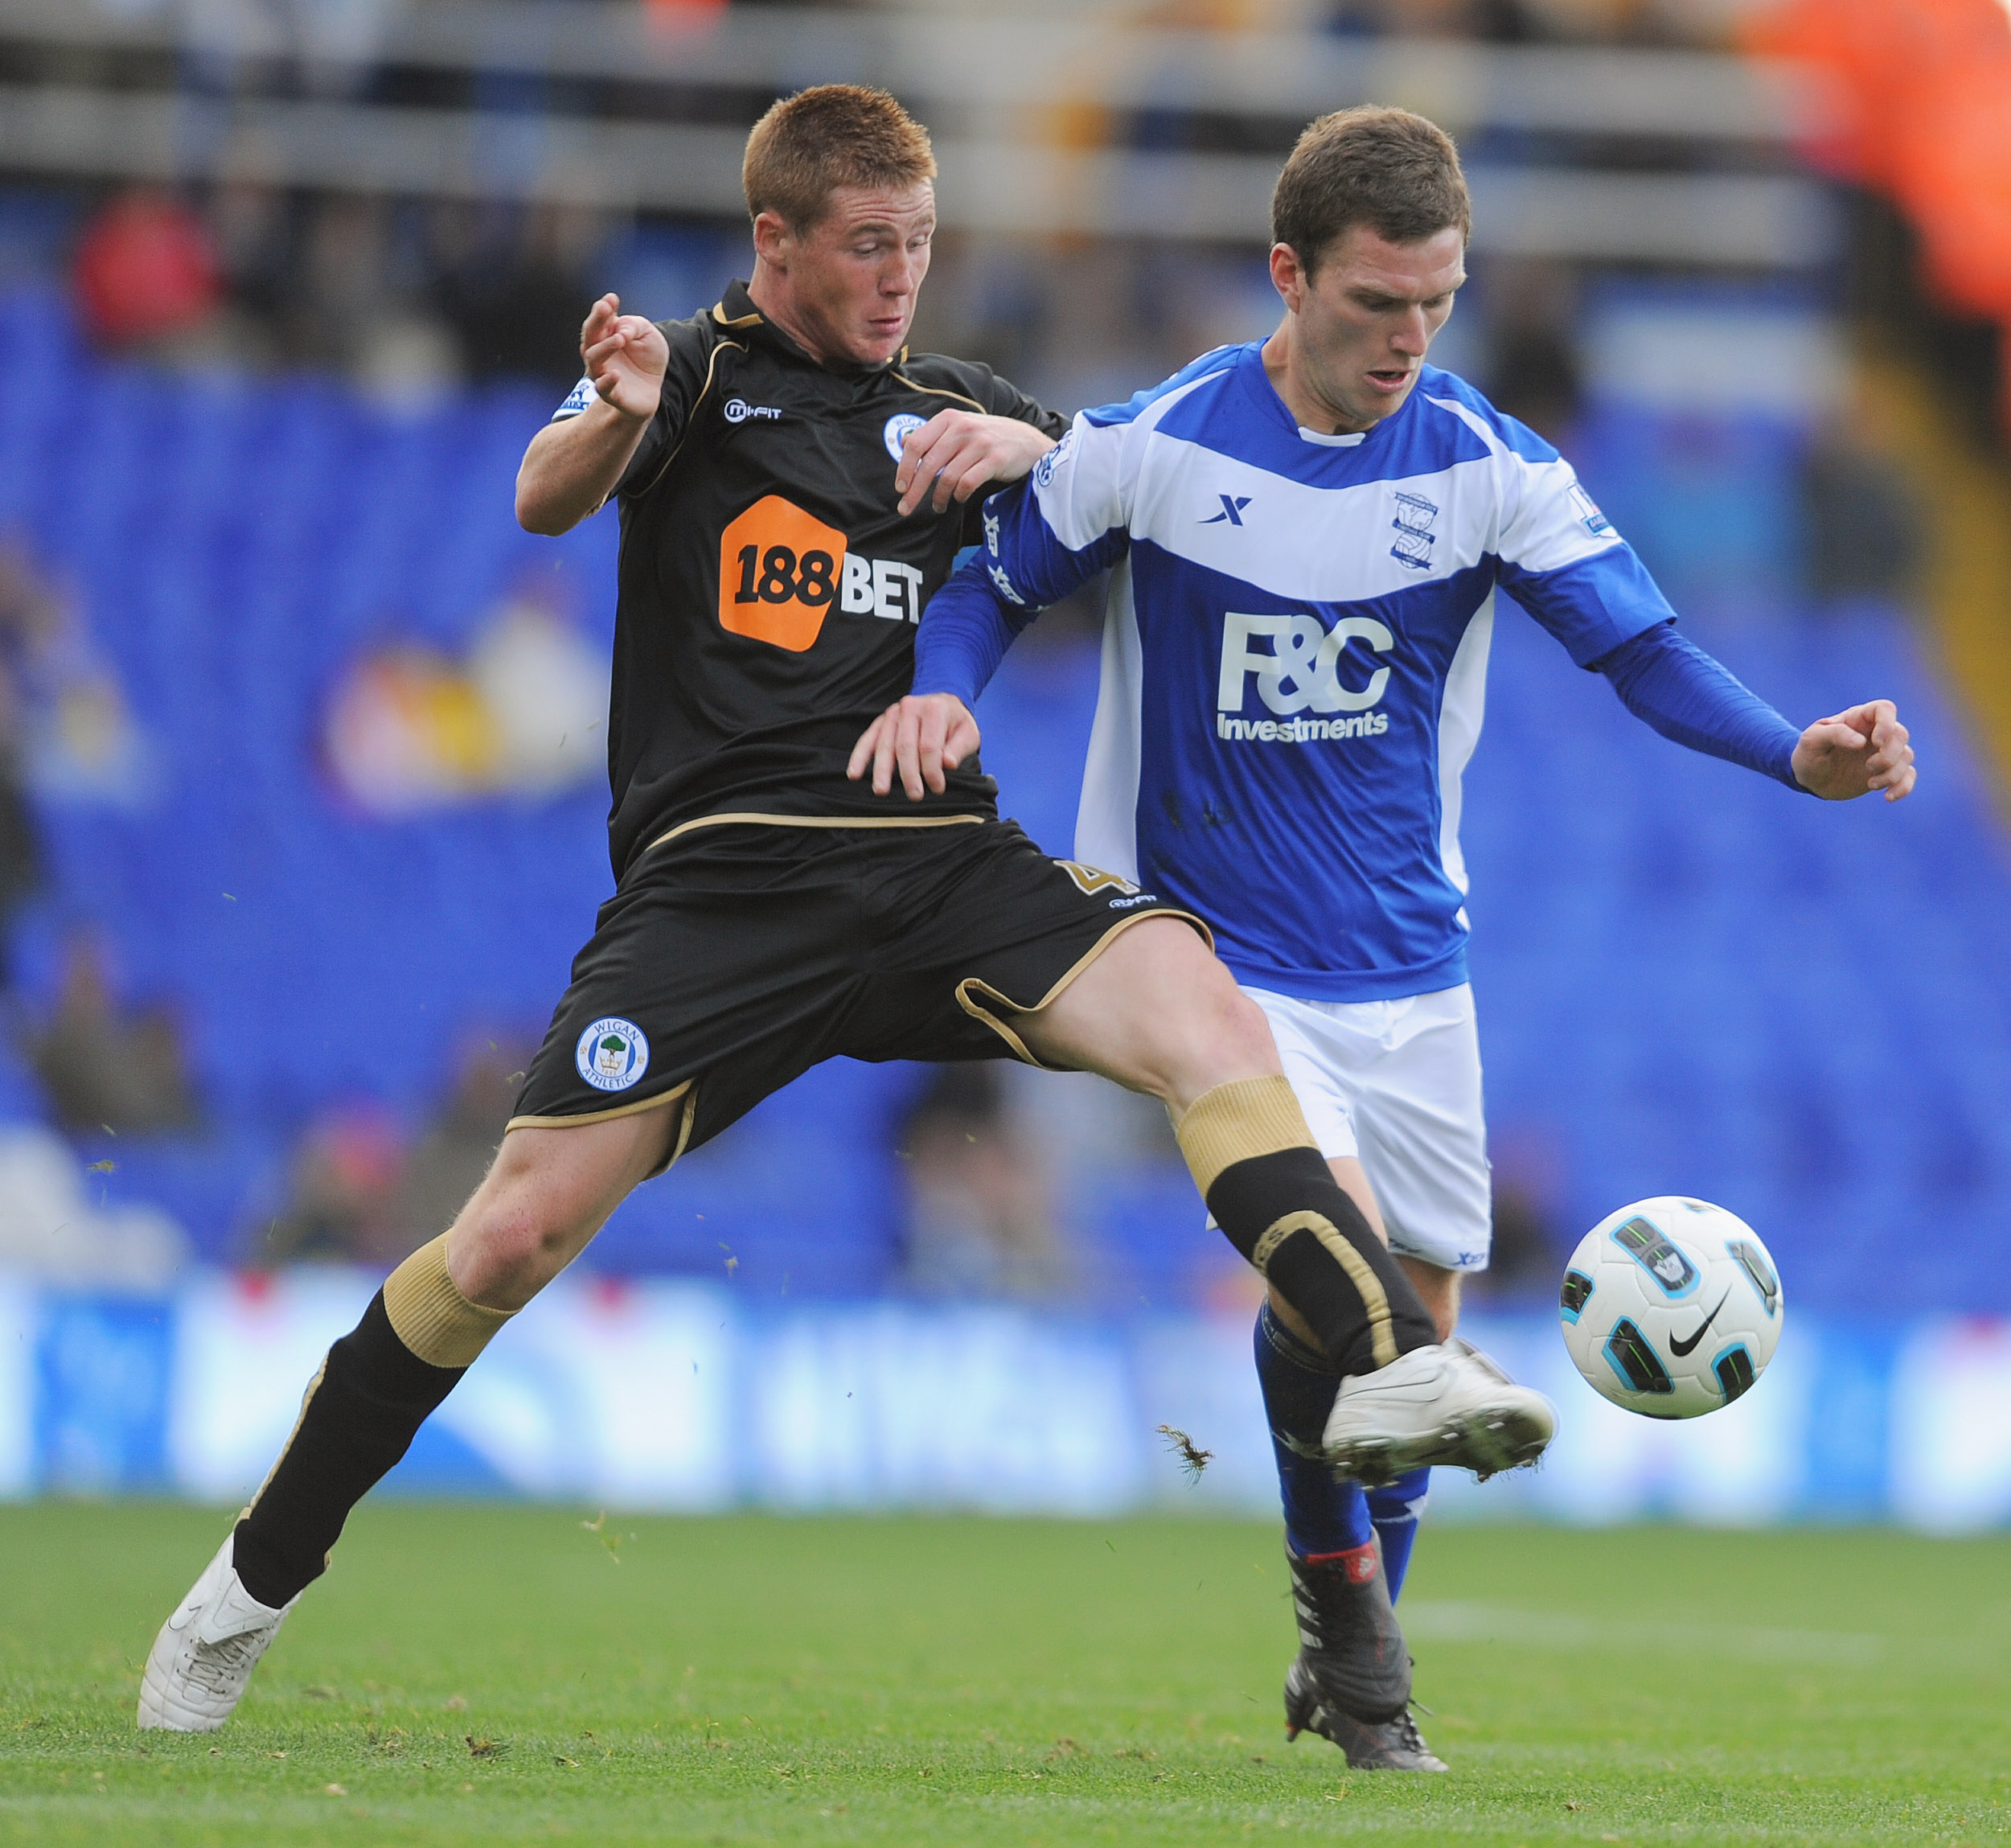 BIRMINGHAM, ENGLAND - SEPTEMBER 25:  Craig Gardner of Birmingham in action with James McCarthyi of Wigan during the Barclays Premier League match between Birmingham City and Wigan Athletic at St Andrews on September 25, 2010 in Birmingham, England.  (Phot